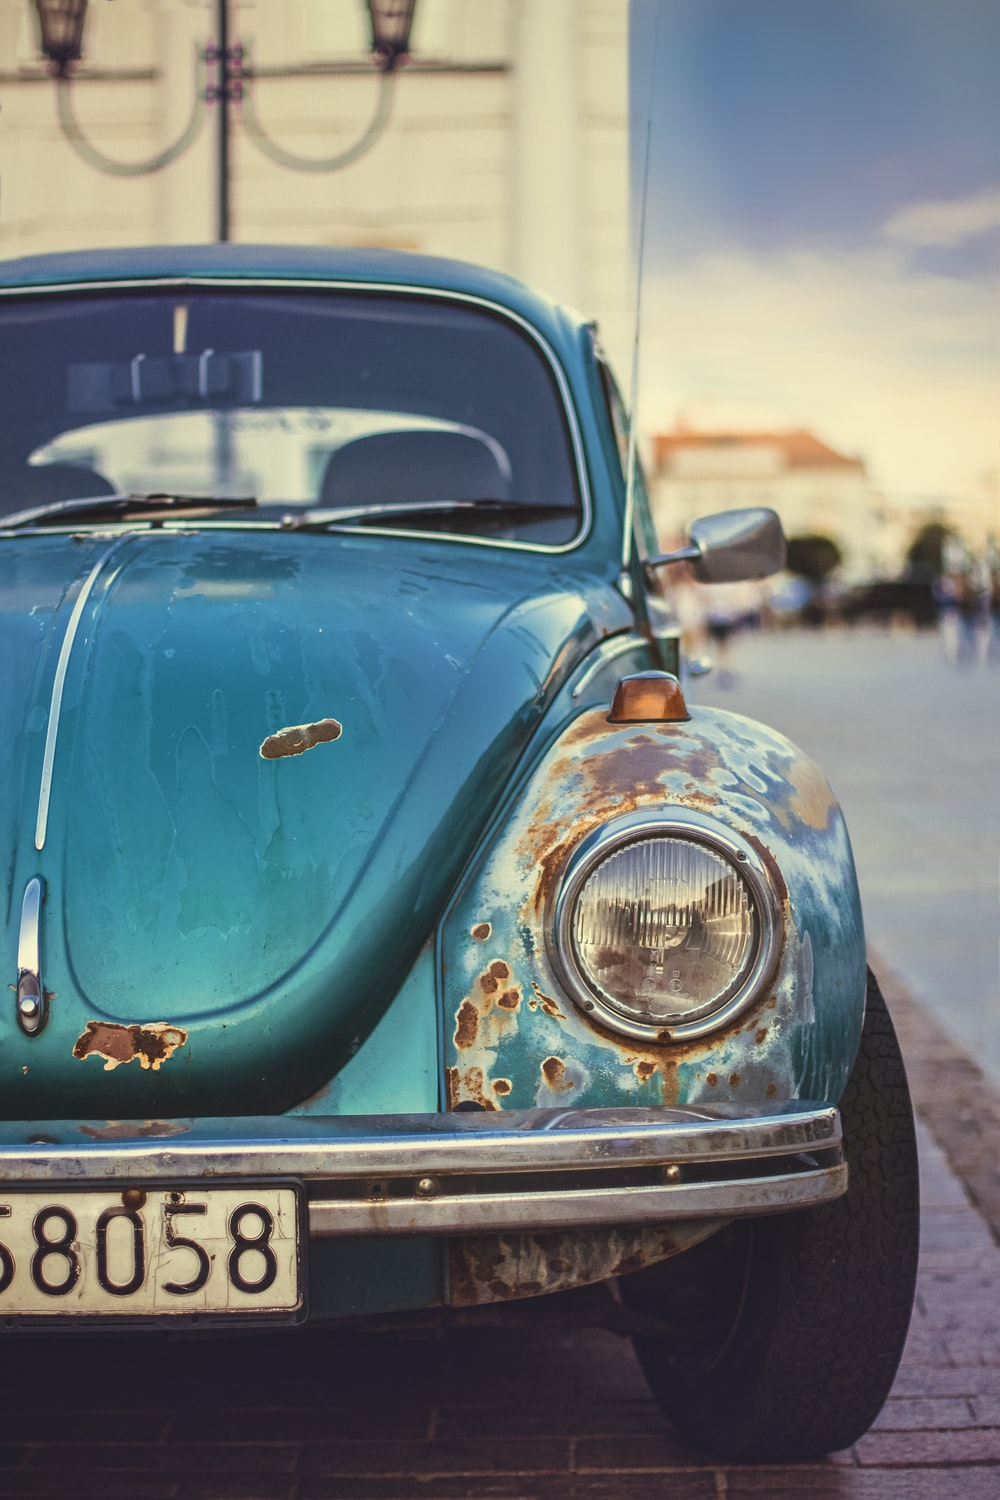 blue Volkswagen Beetle close-up photo